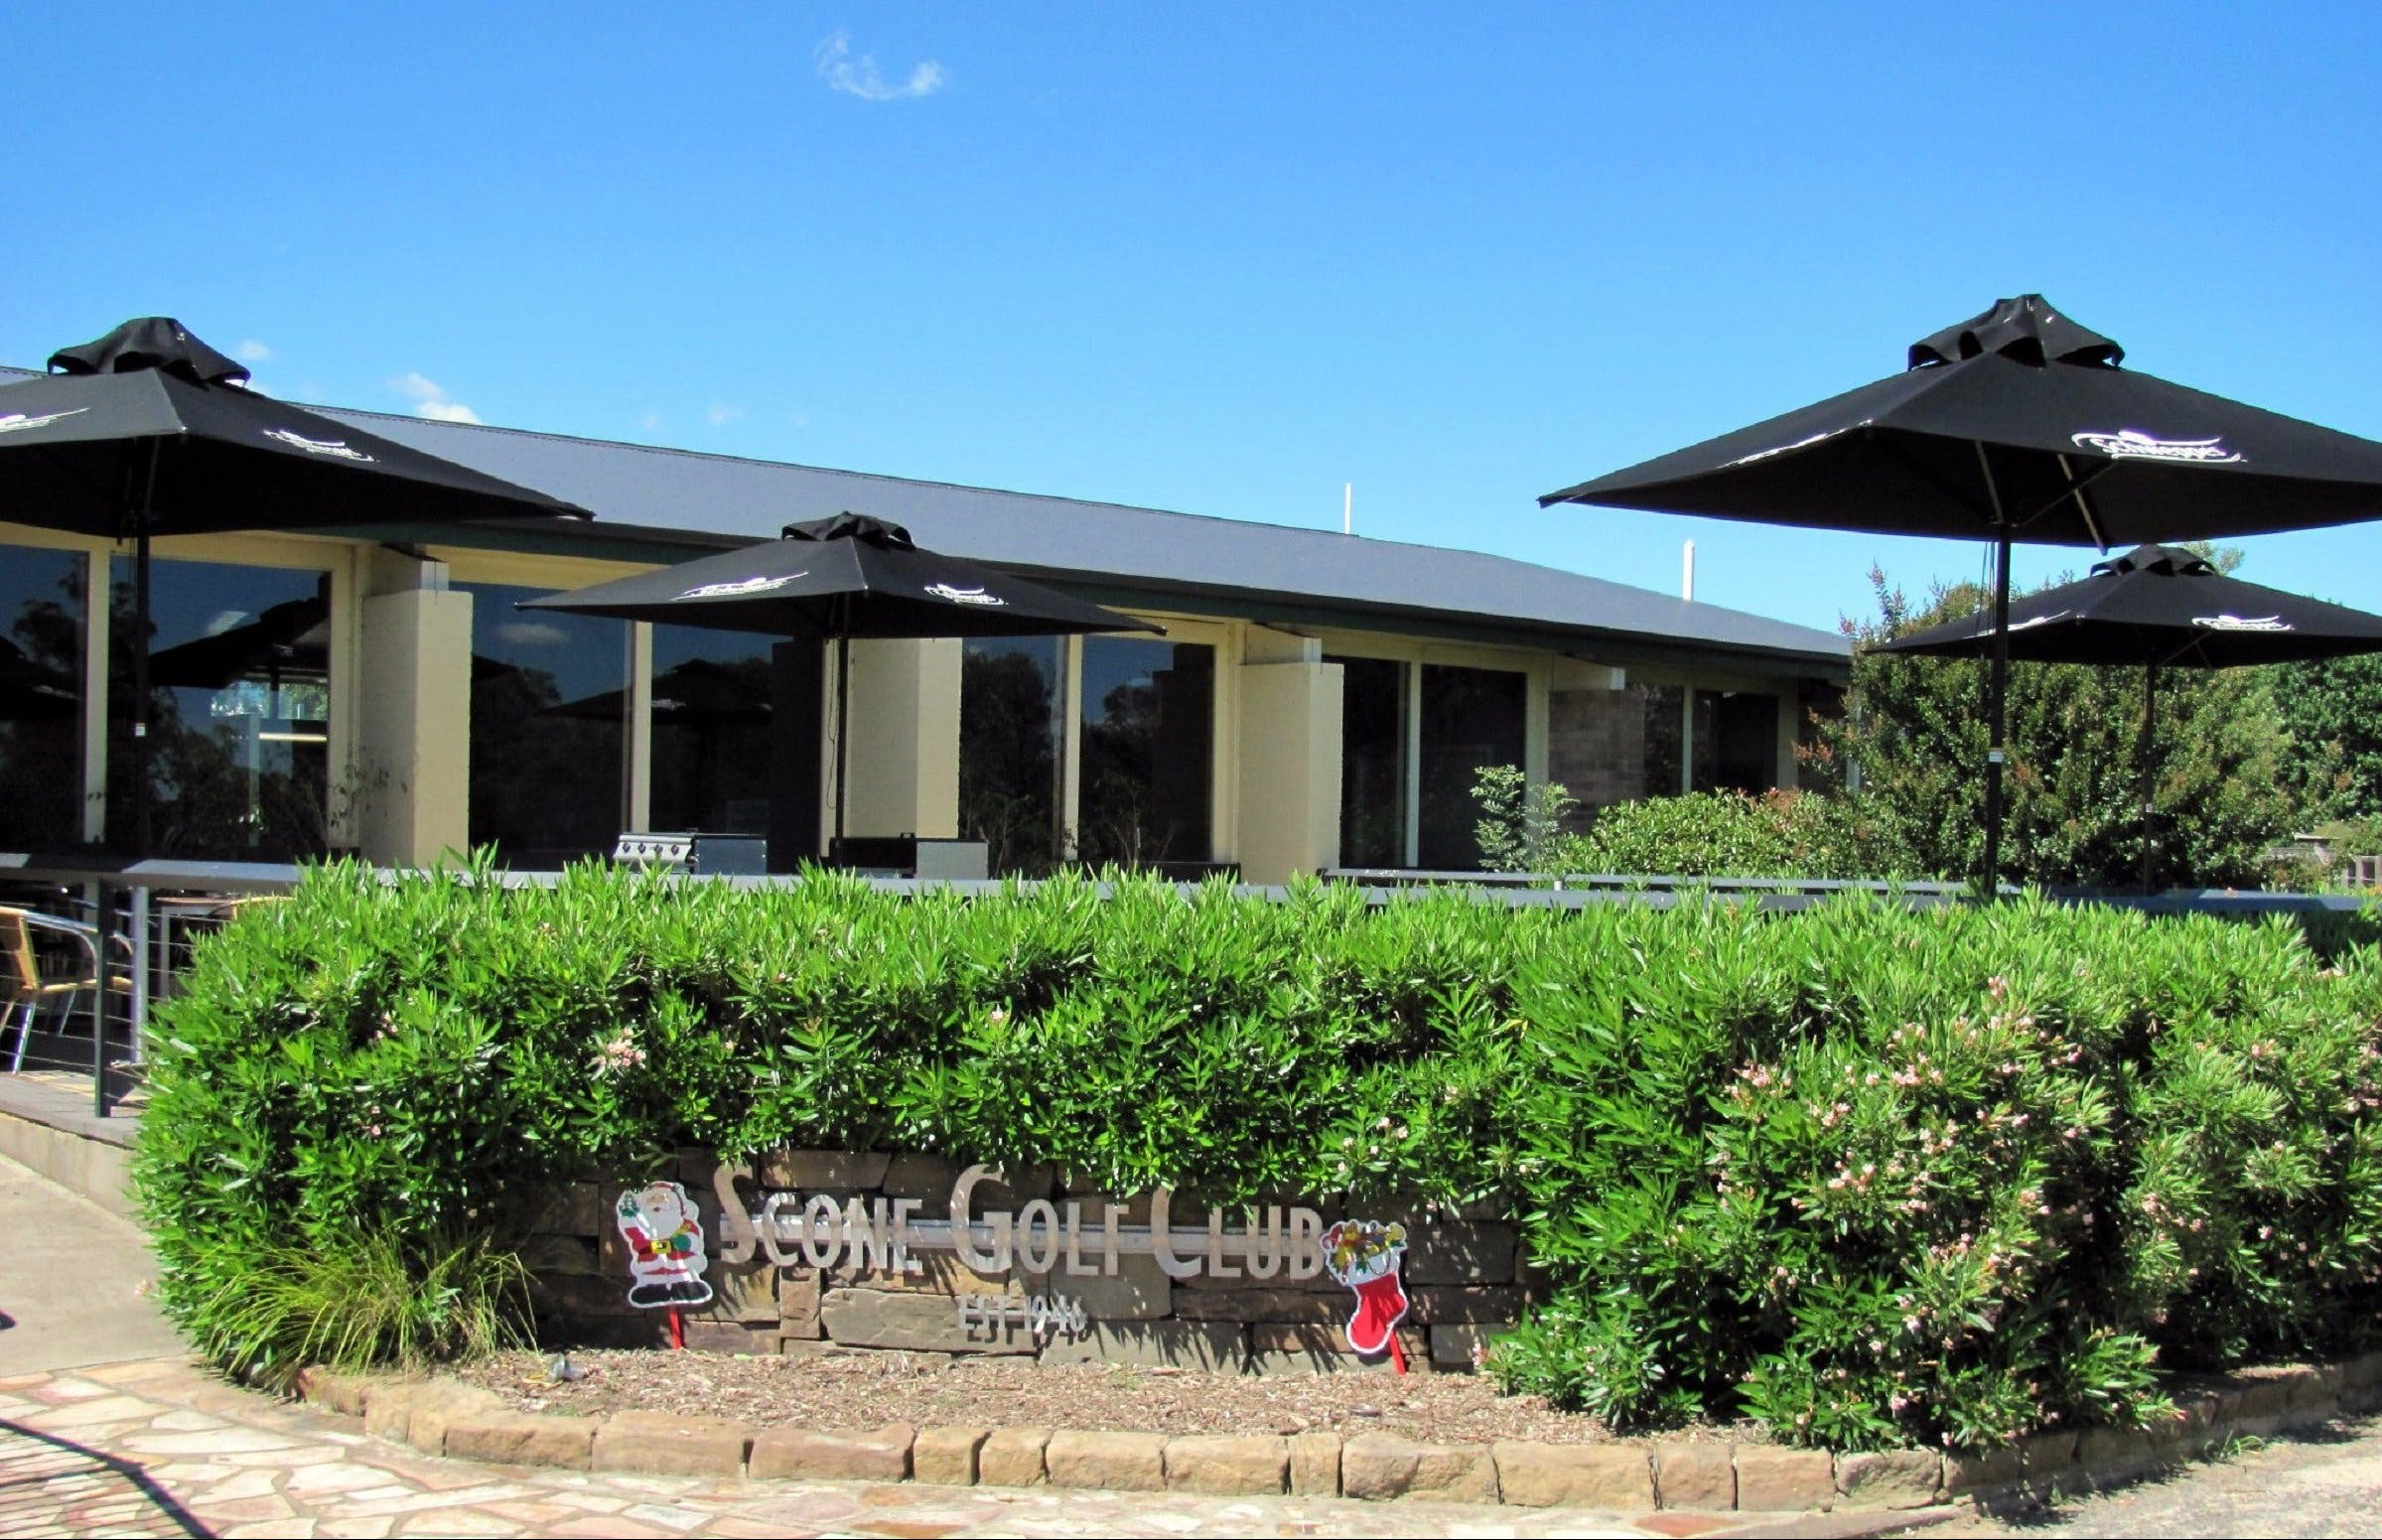 Scone Golf Club - Tourism Brisbane